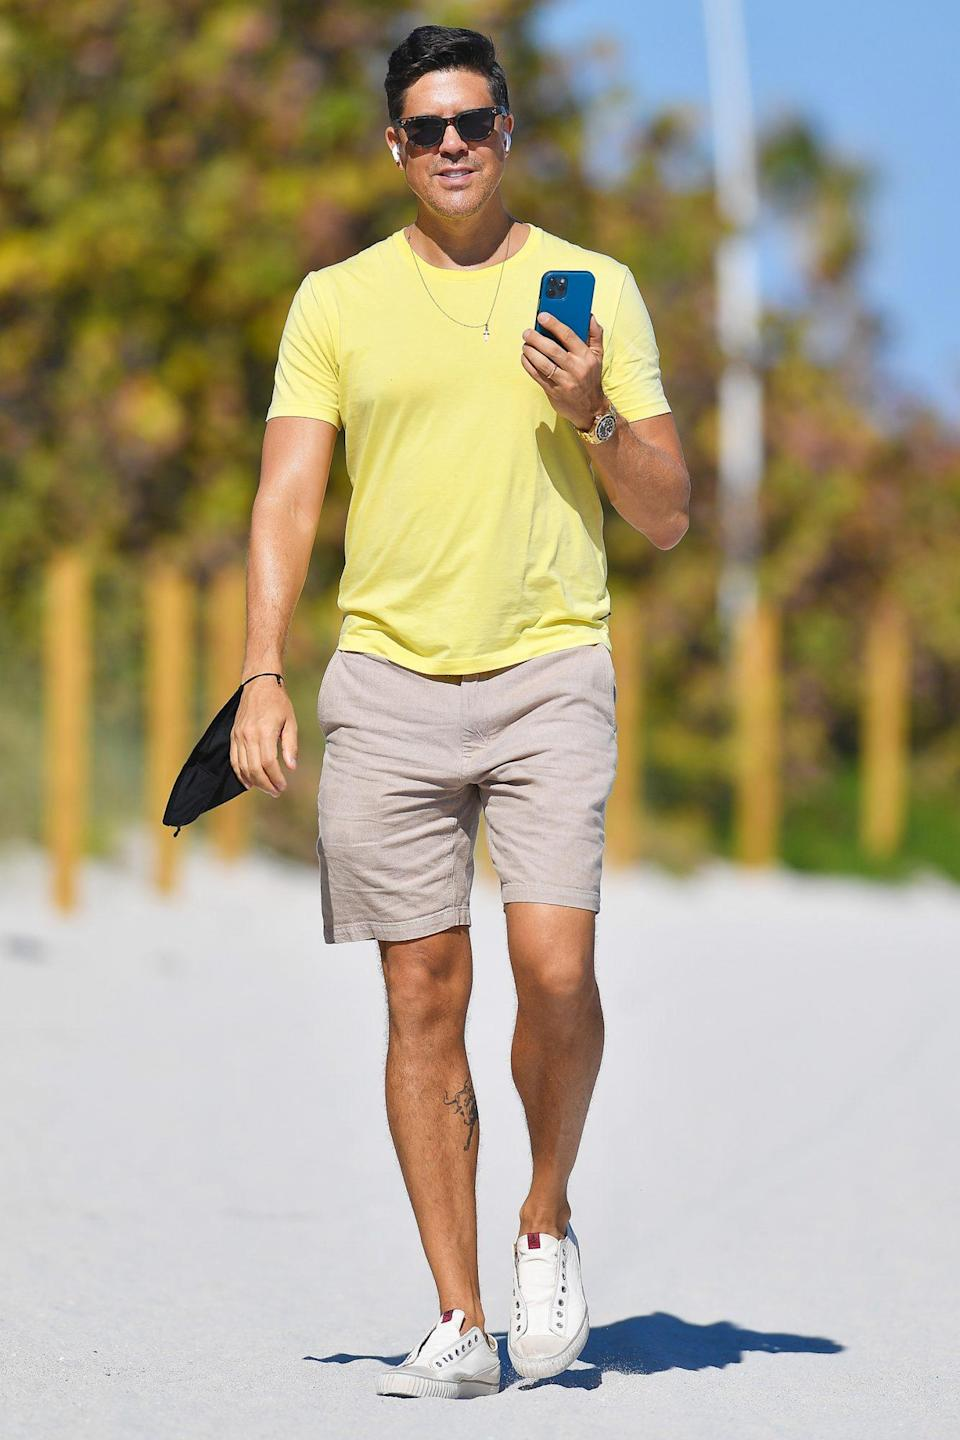 <p><em>Million Dollar Listing</em>'s Fredrik Eklund talks on his phone during a stroll in Miami over the weekend.</p>